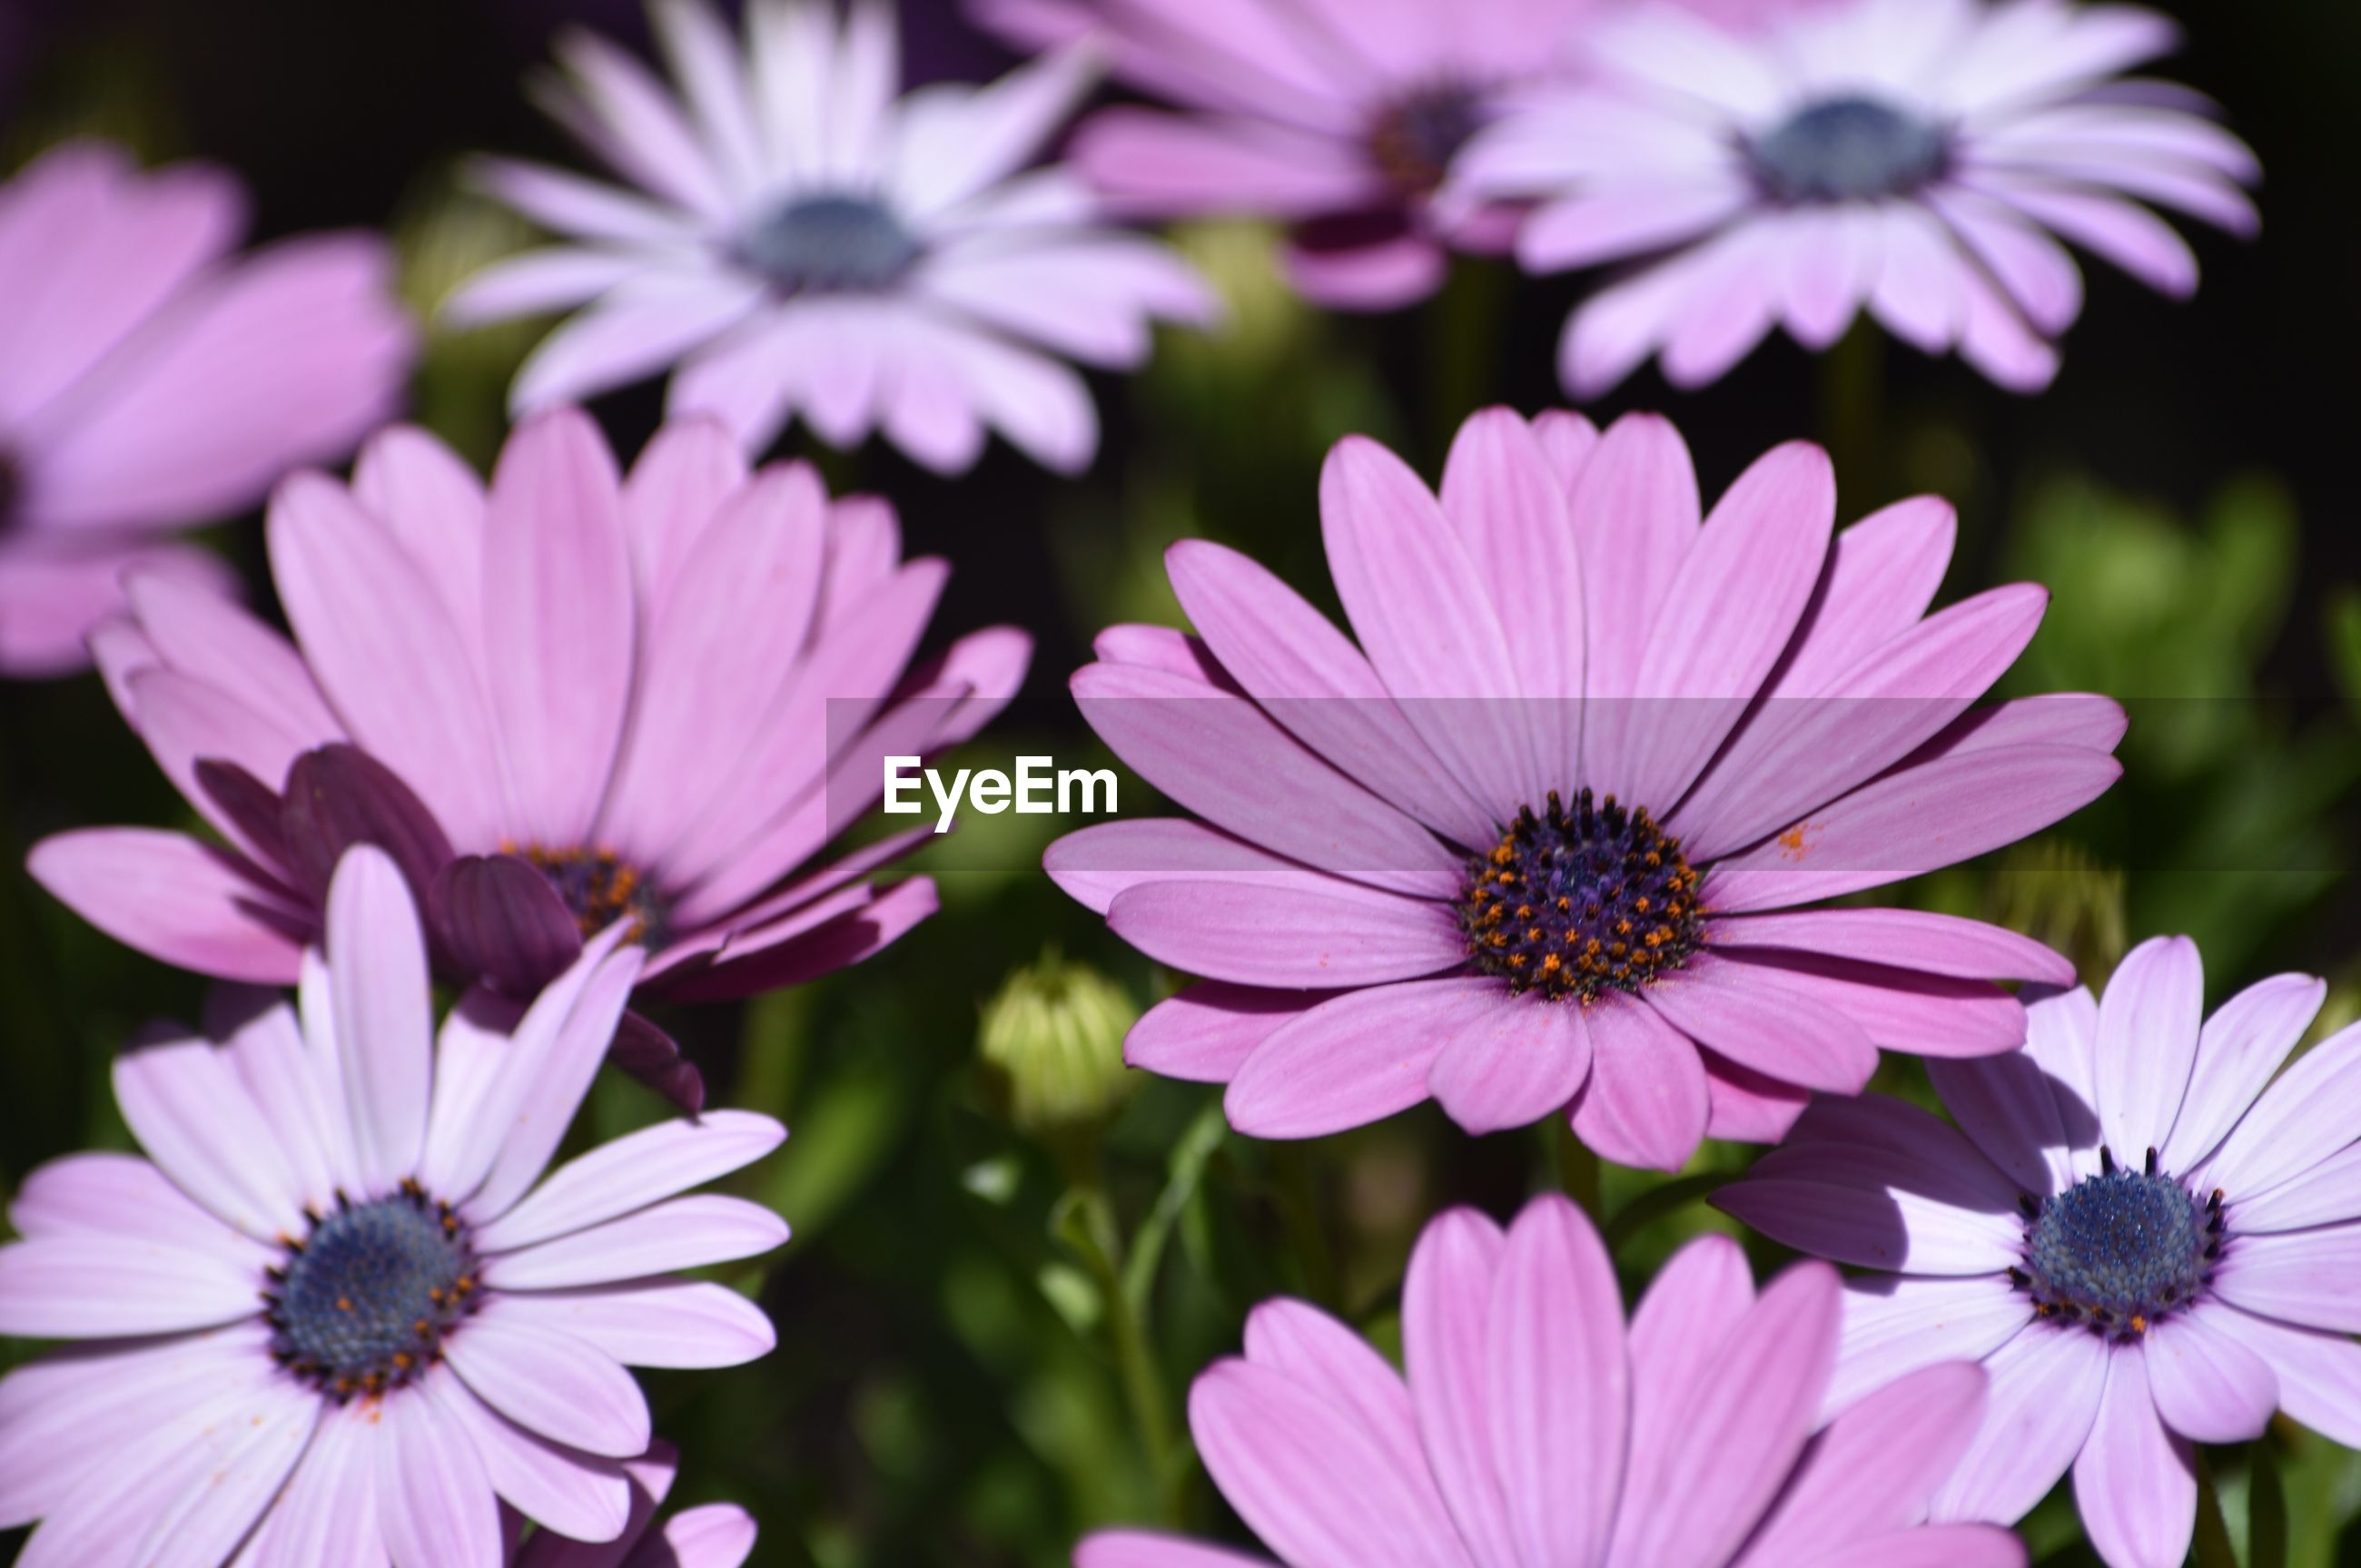 CLOSE-UP OF PINK DAISY FLOWERS